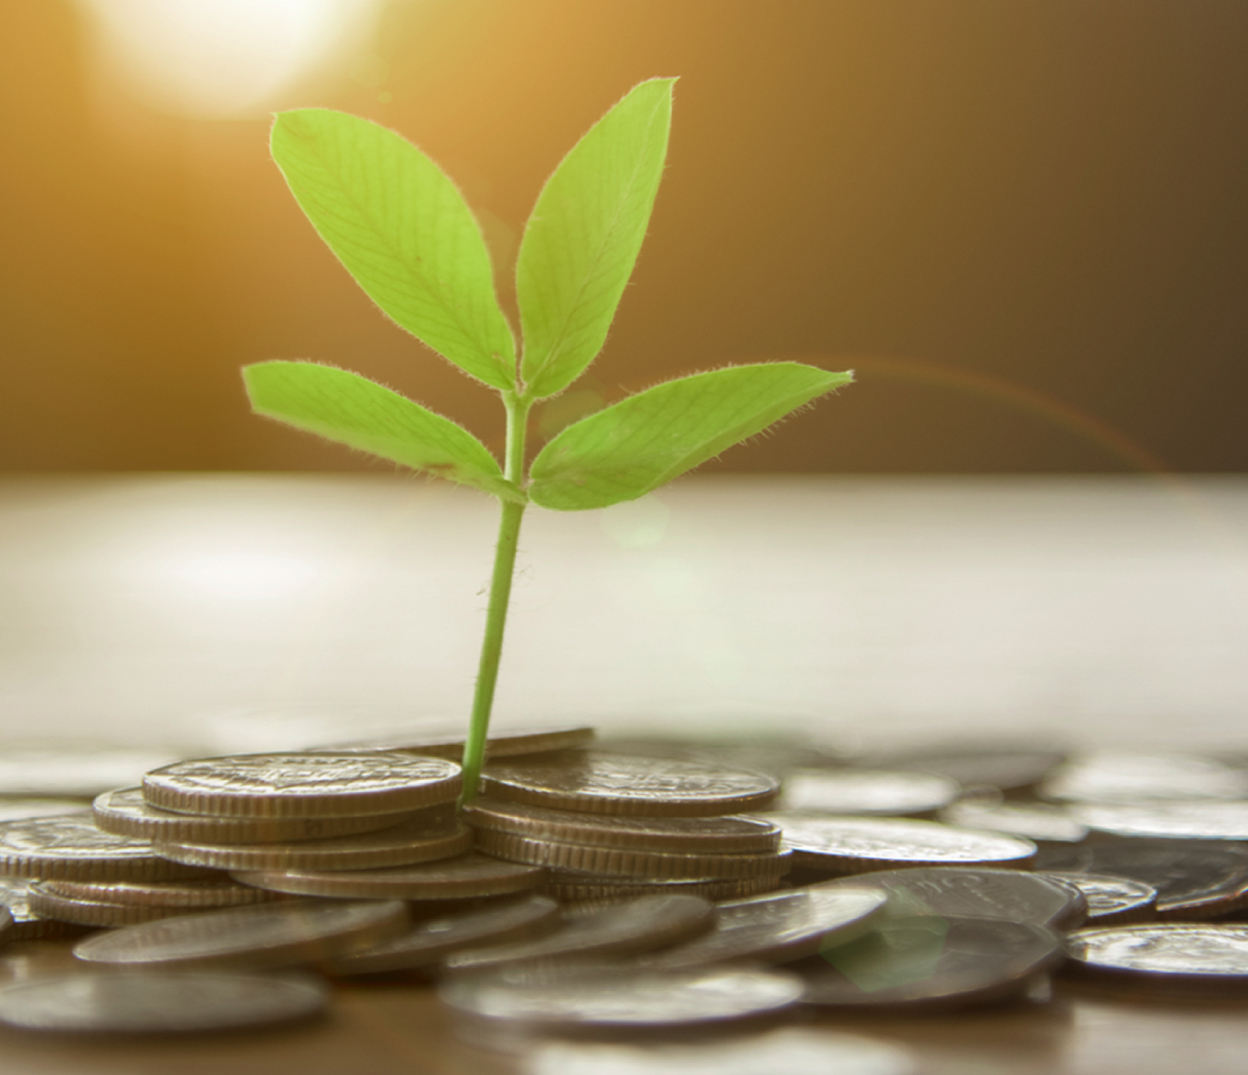 Young plant emerging from coins